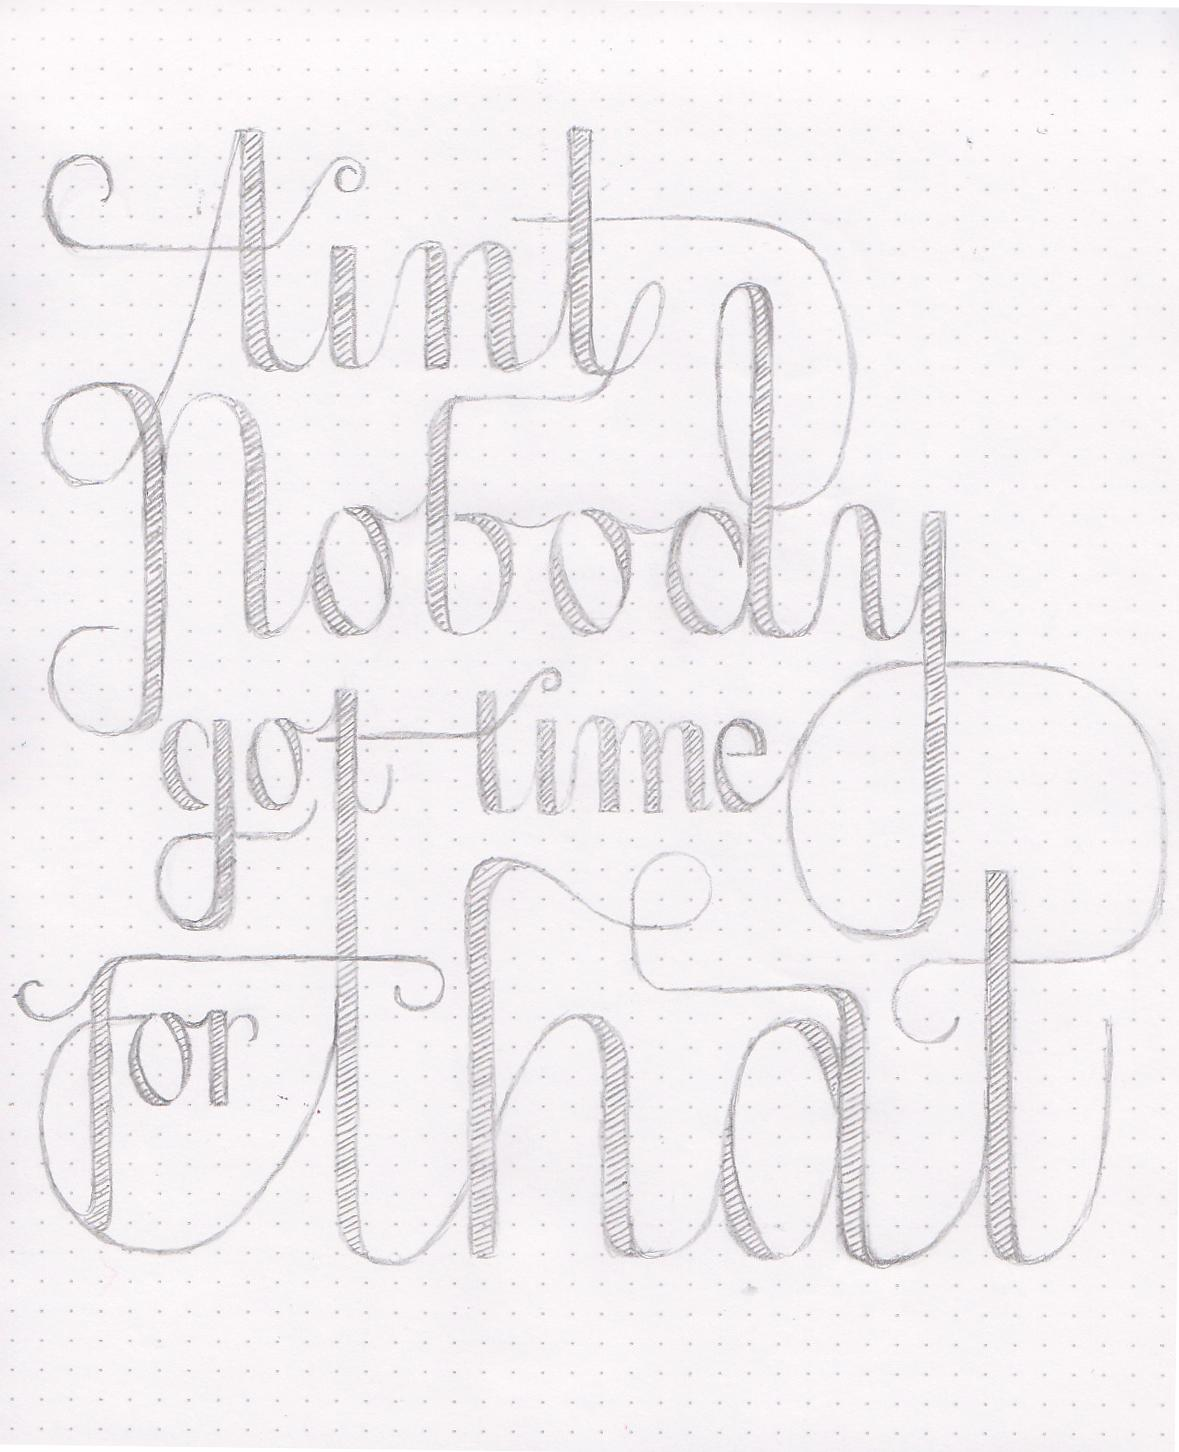 Ain't Nobody Got Time For That. - image 1 - student project